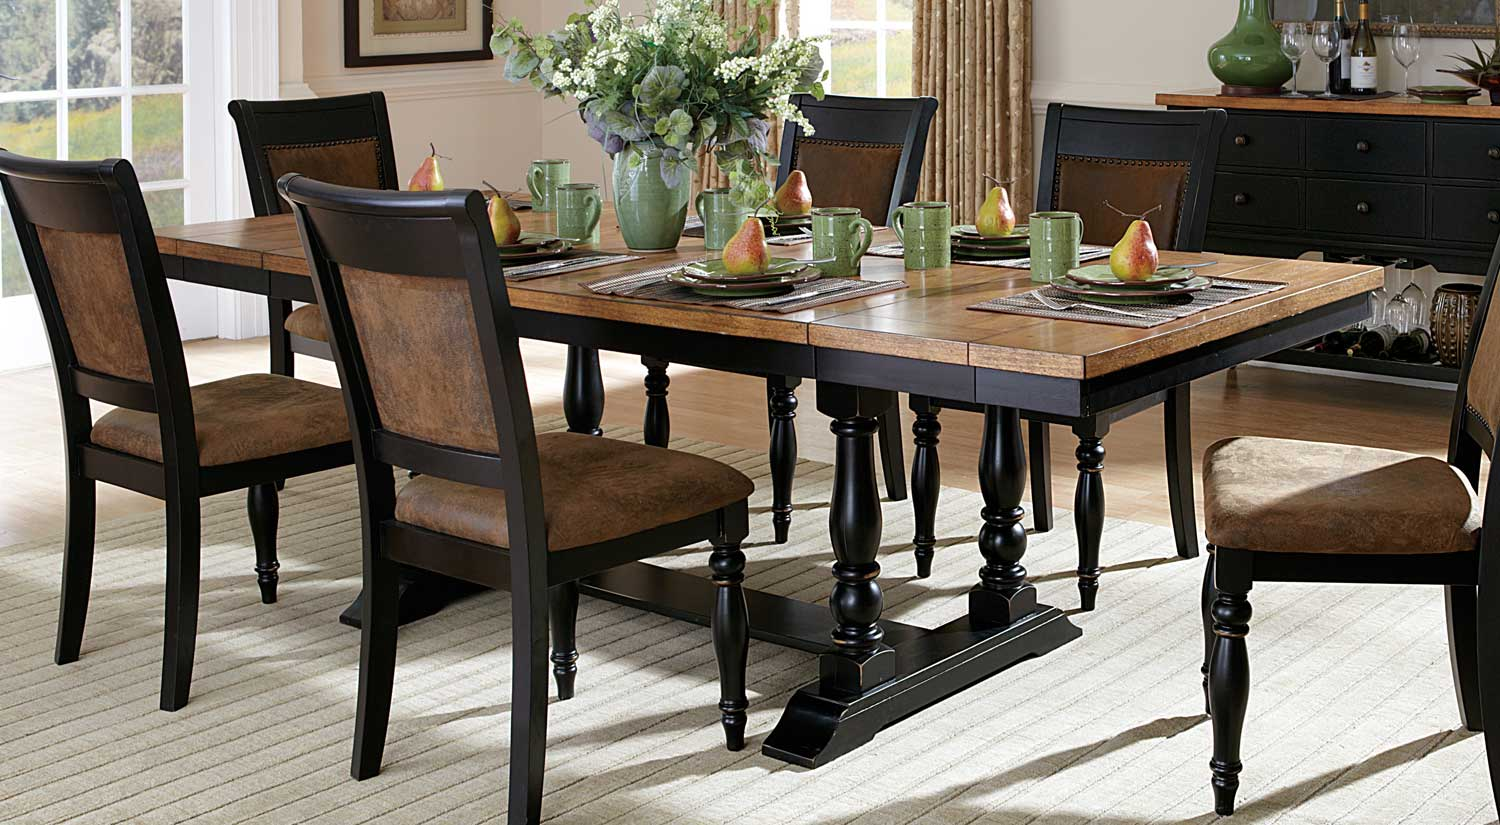 Homelegance Grisoni Dining Table With Two End Leaves Acacia - Distressed dark wood dining table